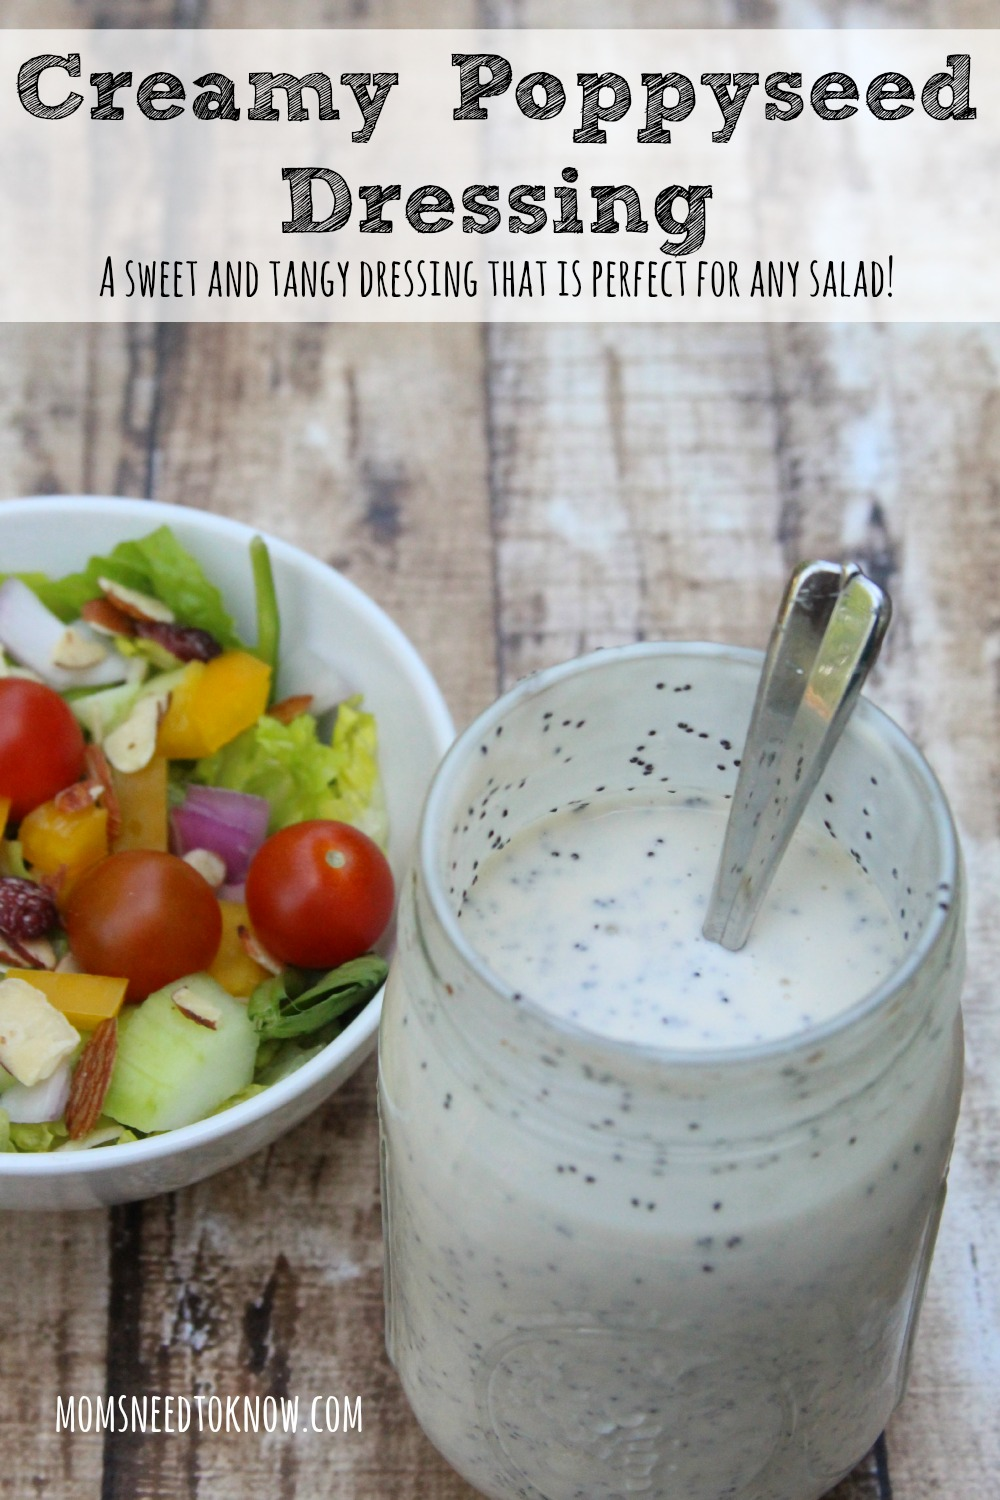 This creamy poppy seed dressing recipe is the perfect mix of tangy and sweet. I have yet to find a salad that doesn't taste better with this dressing!